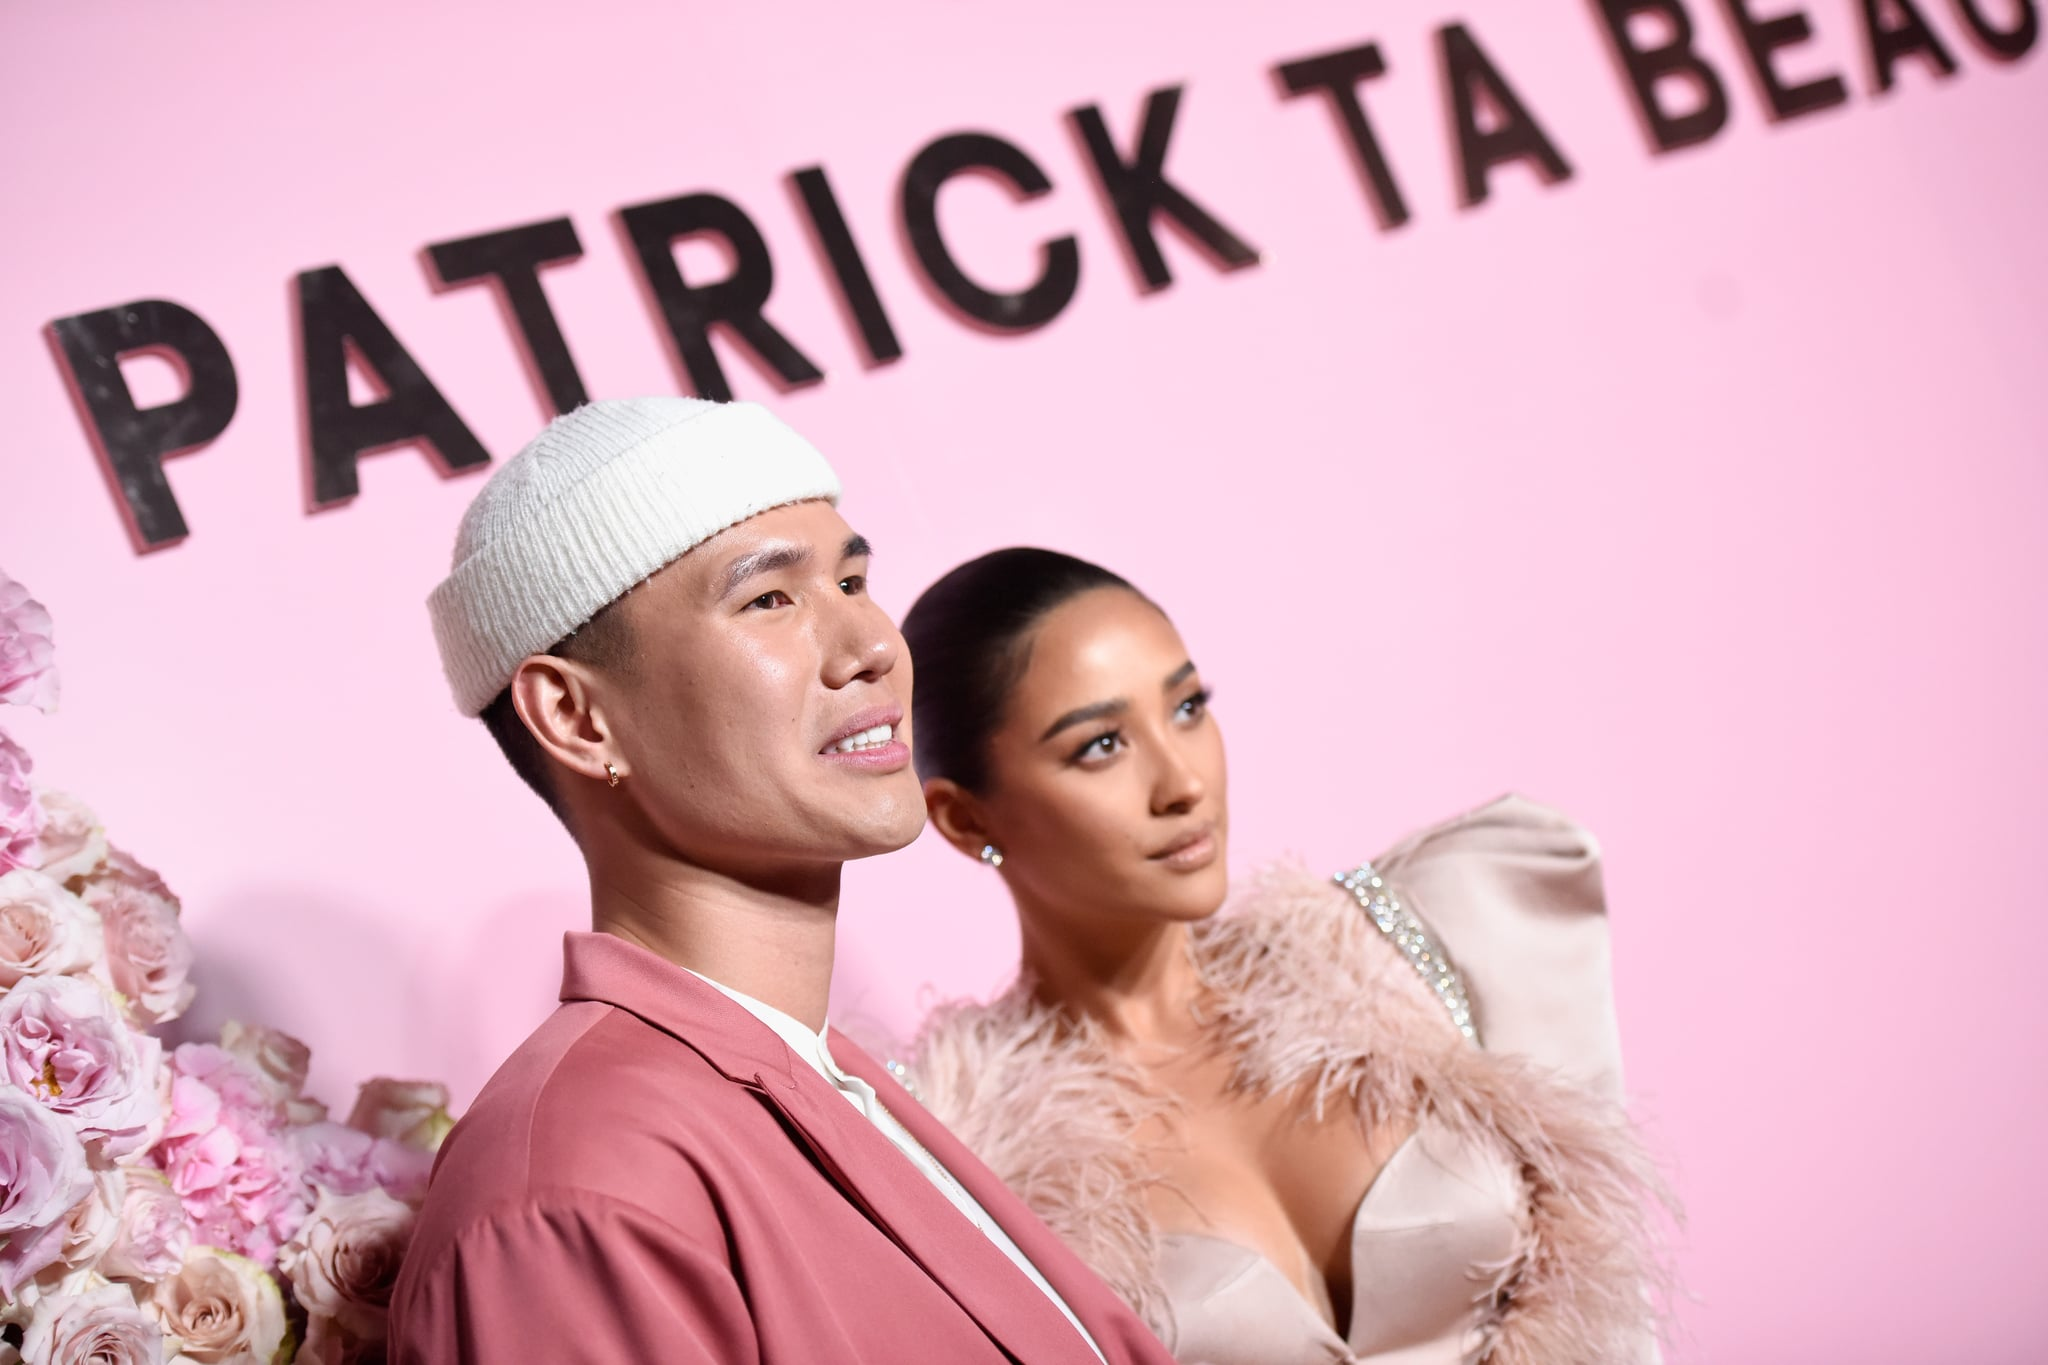 LOS ANGELES, CA - APRIL 04:  Patrick Ta (L) and Shay Mitchell attends Patrick Ta Beauty Launch on April 4, 2019 in Los Angeles, California.  (Photo by Vivien Killilea/Getty Images for Patrick Ta Beauty)